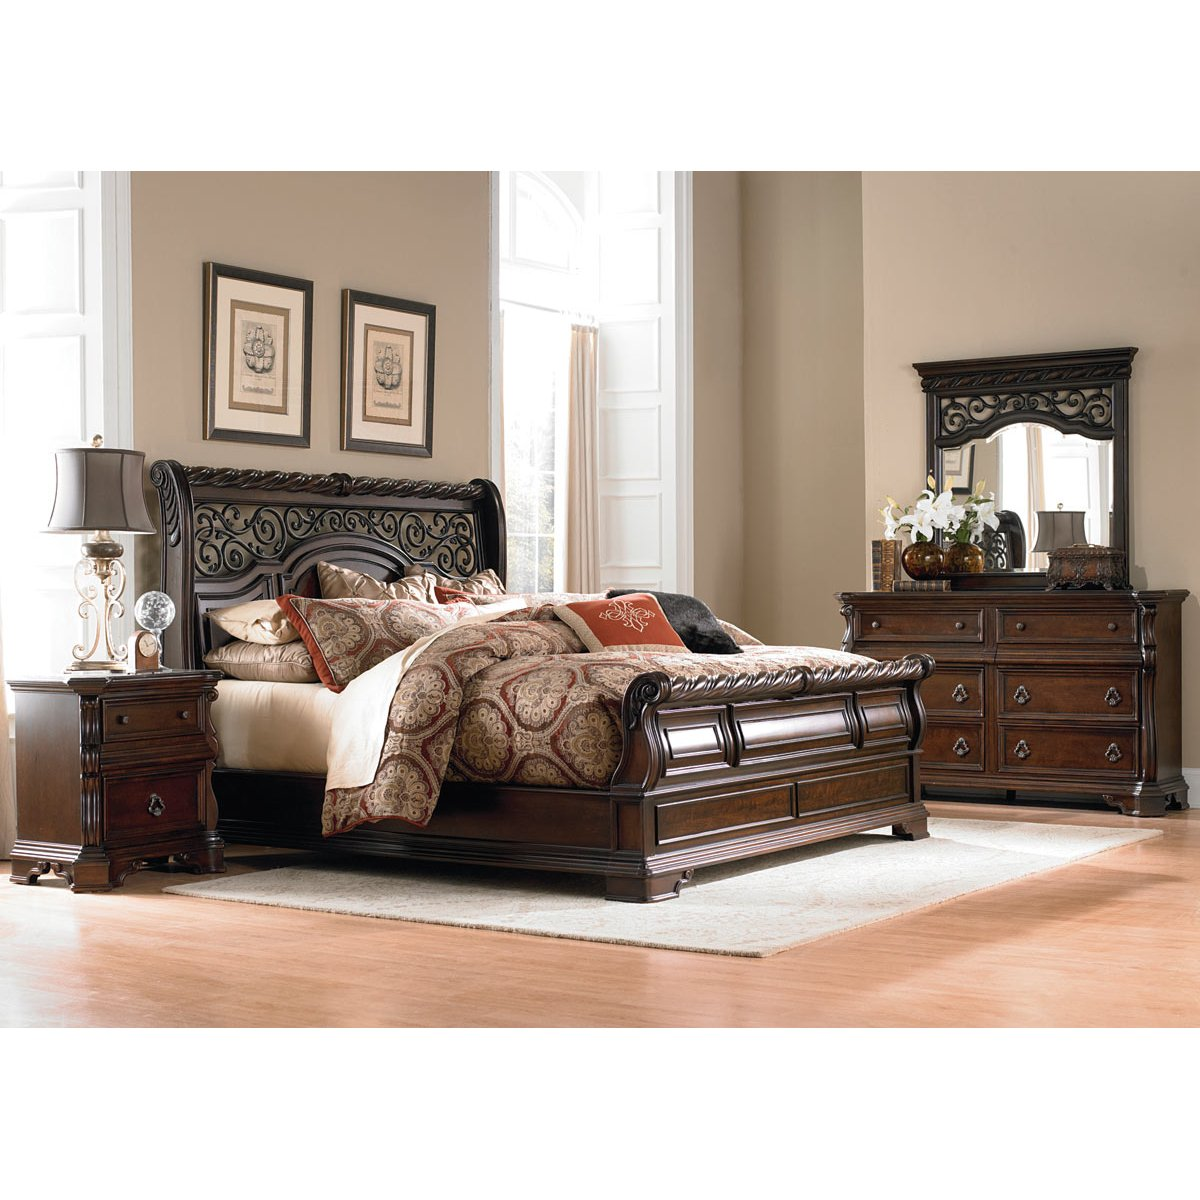 Furniture Bedroom Set New in Home Decorating Ideas